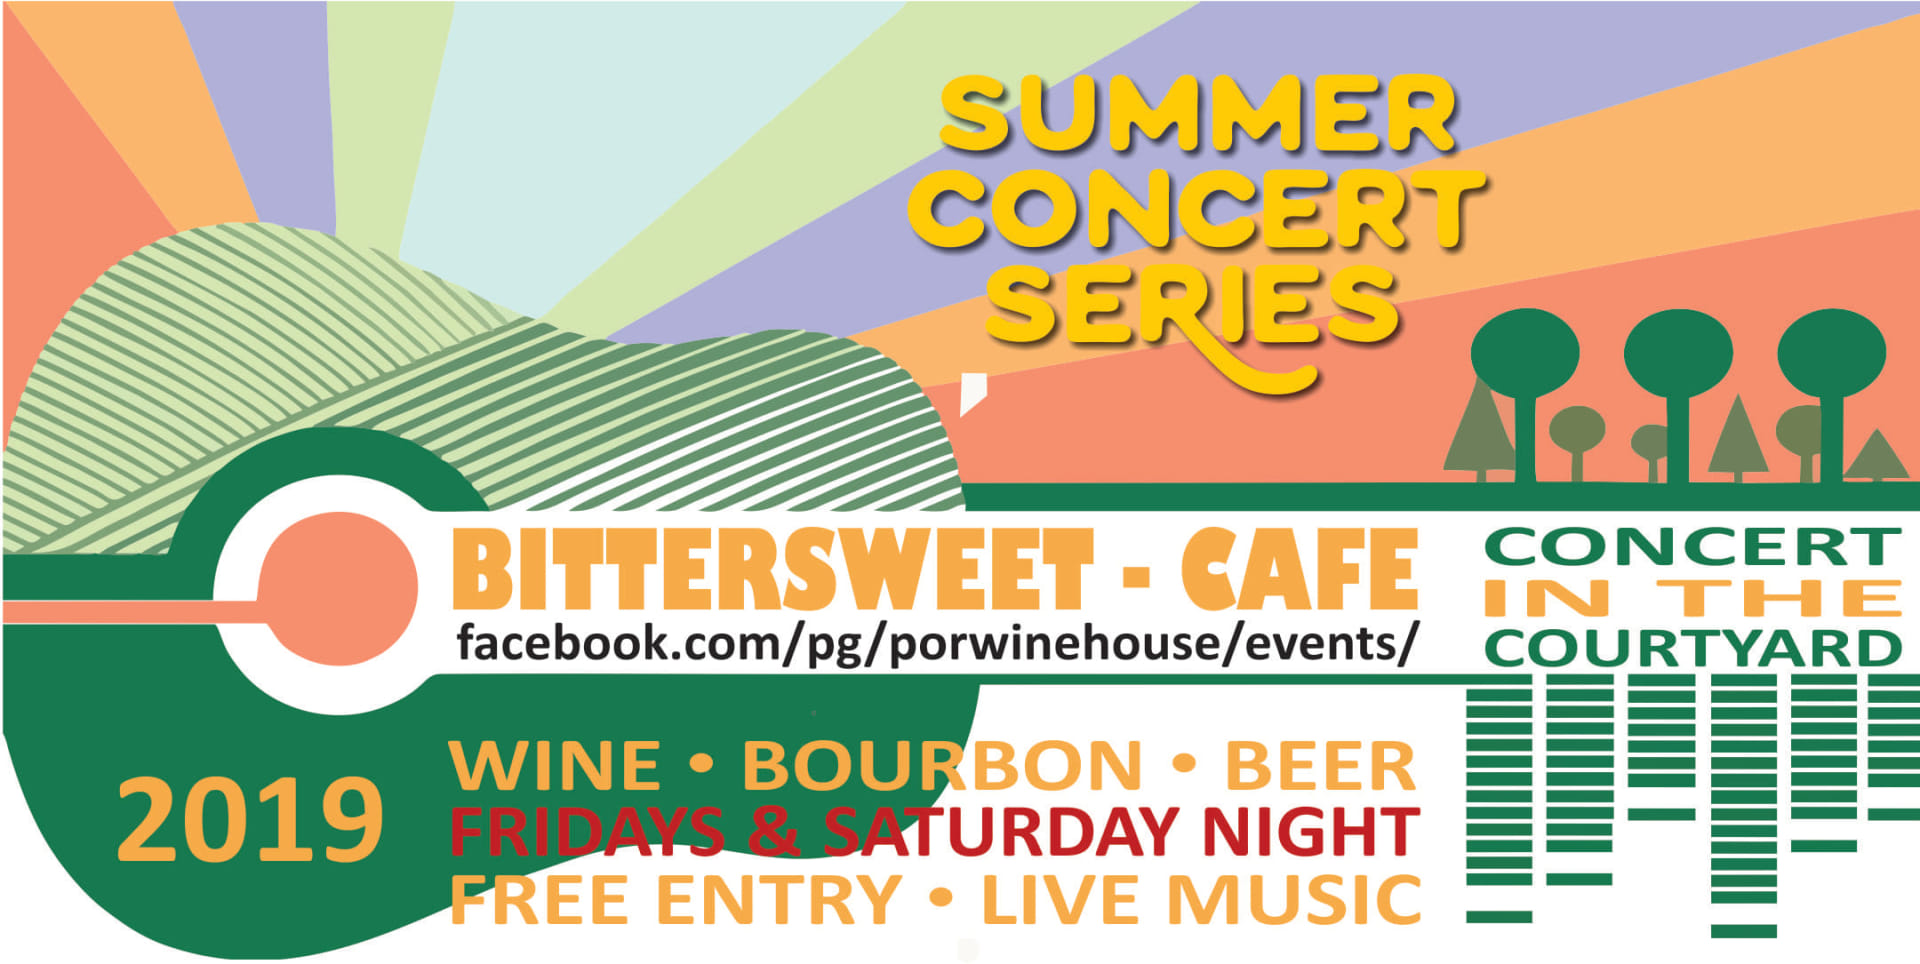 Summer Concerts in the Courtyard